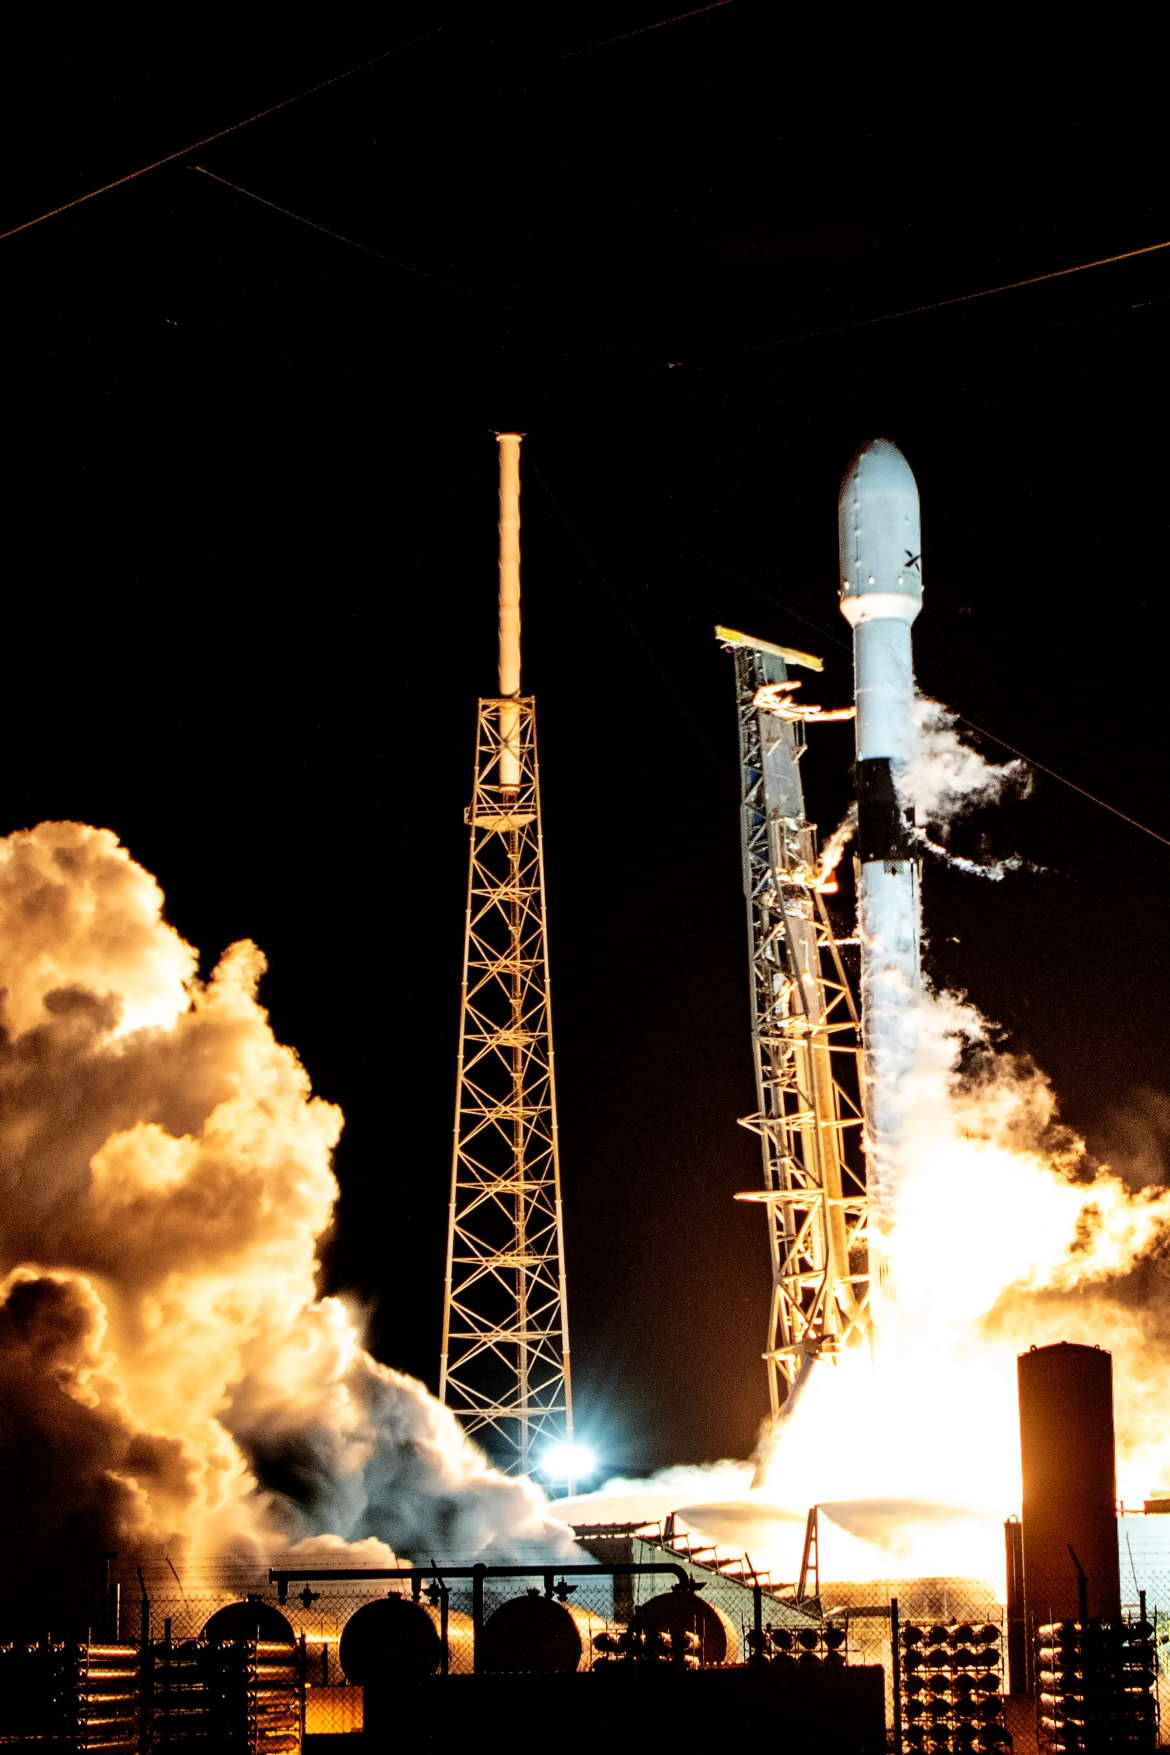 SpaceX Falcon 9 rocket launch of Starlink 9, which is one of a series of Starlink missions to provide fast internet speed to remote populations. [Michael Tracy/Al Jazeera]